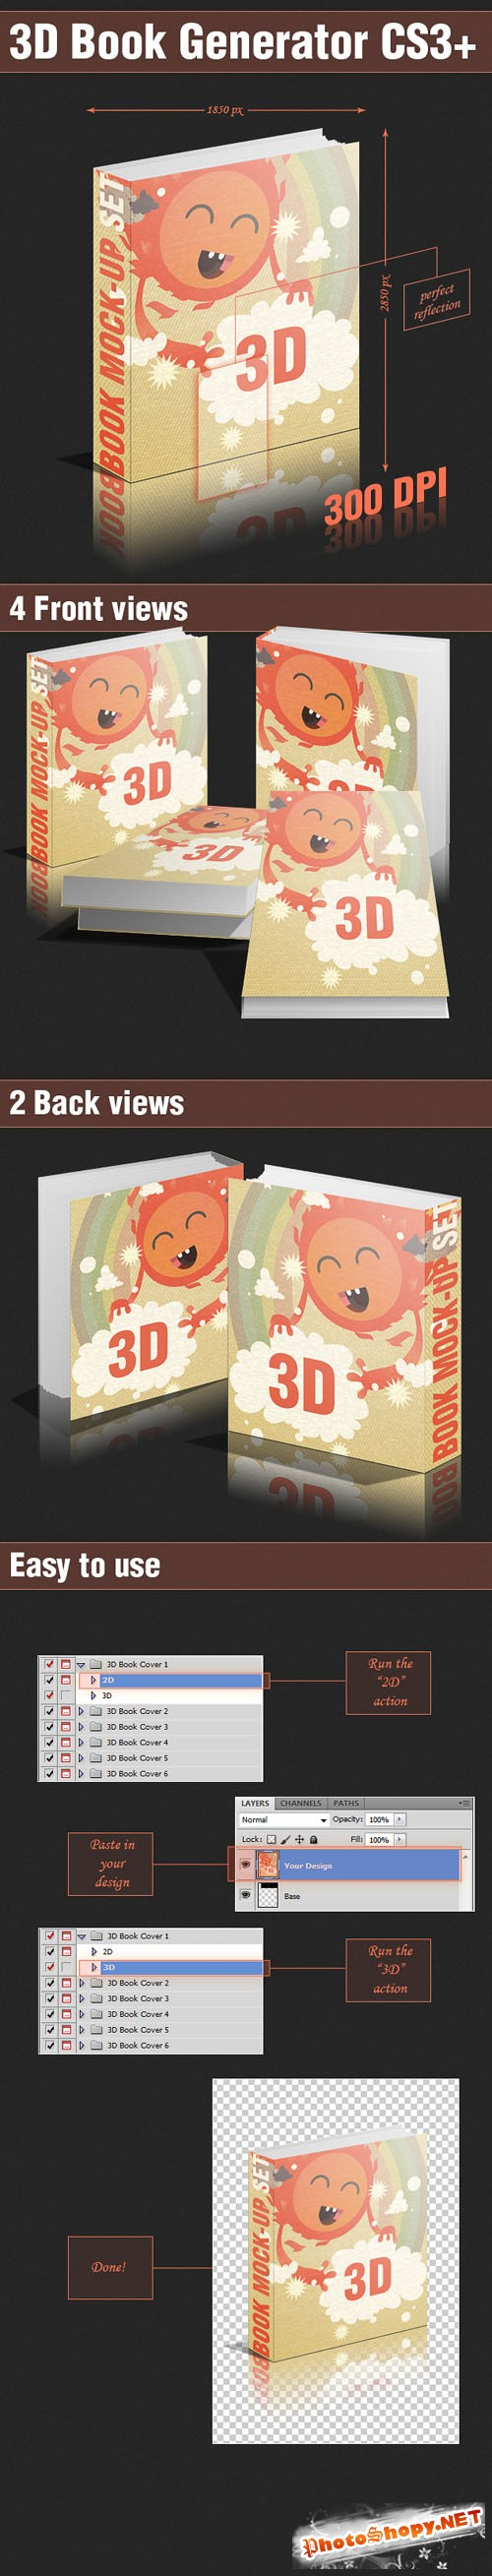 Designtnt - 3D Book Generator PS Actions